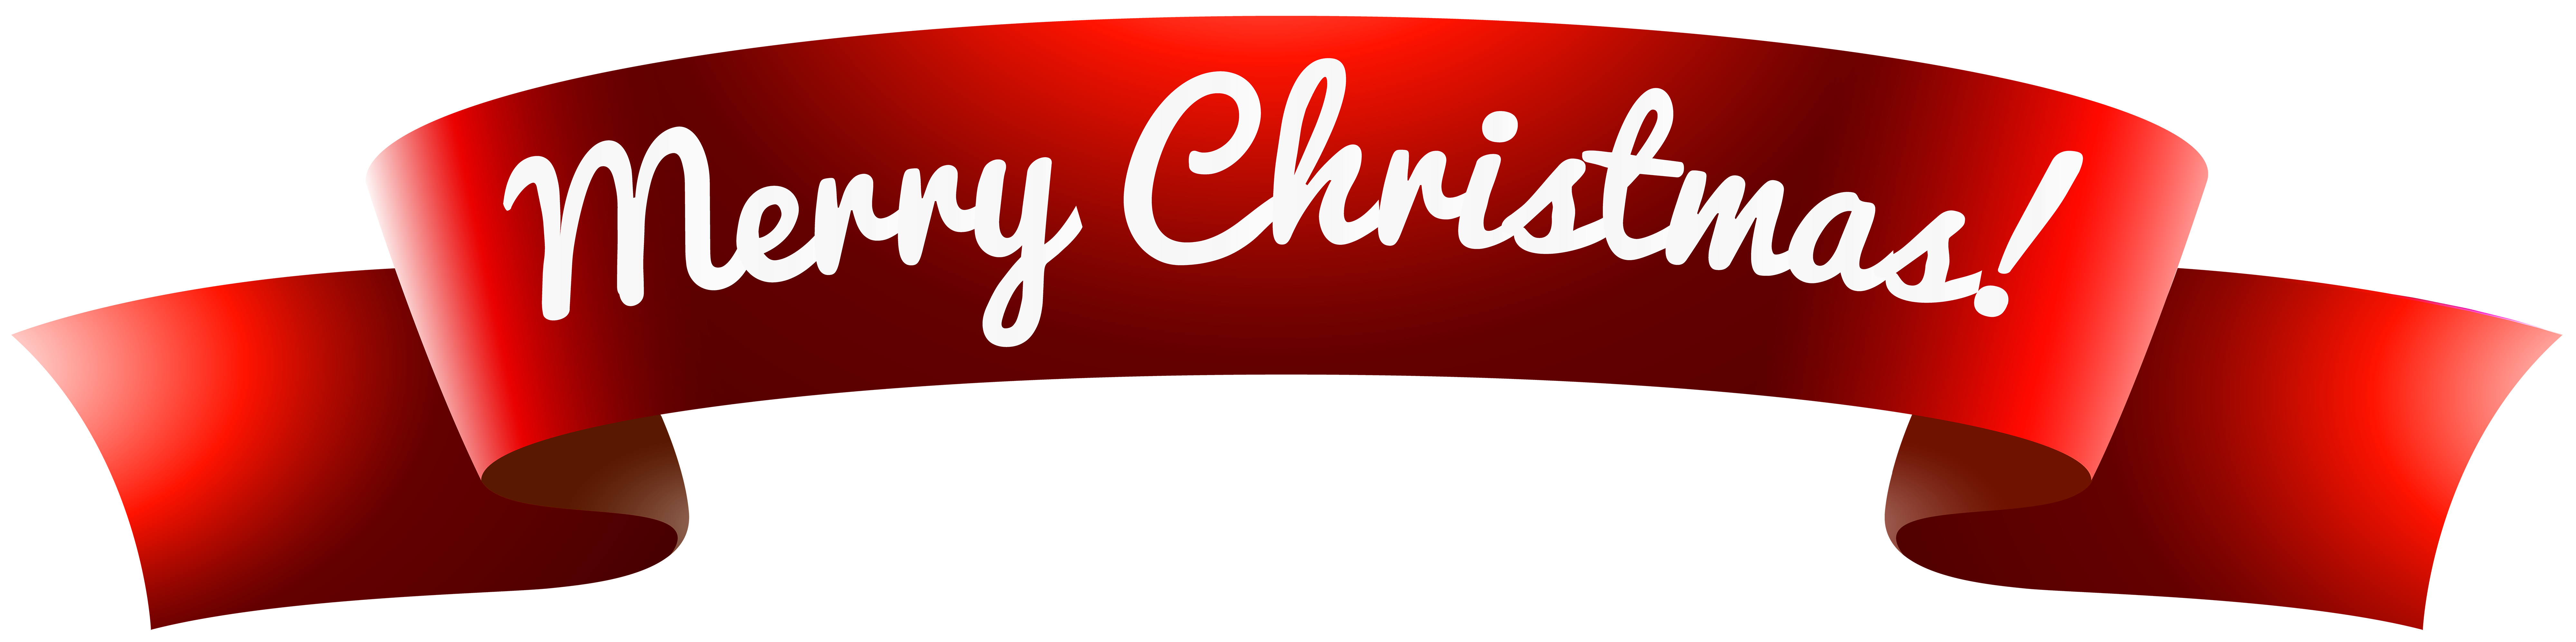 Merry christmas banner png. Clip art image gallery